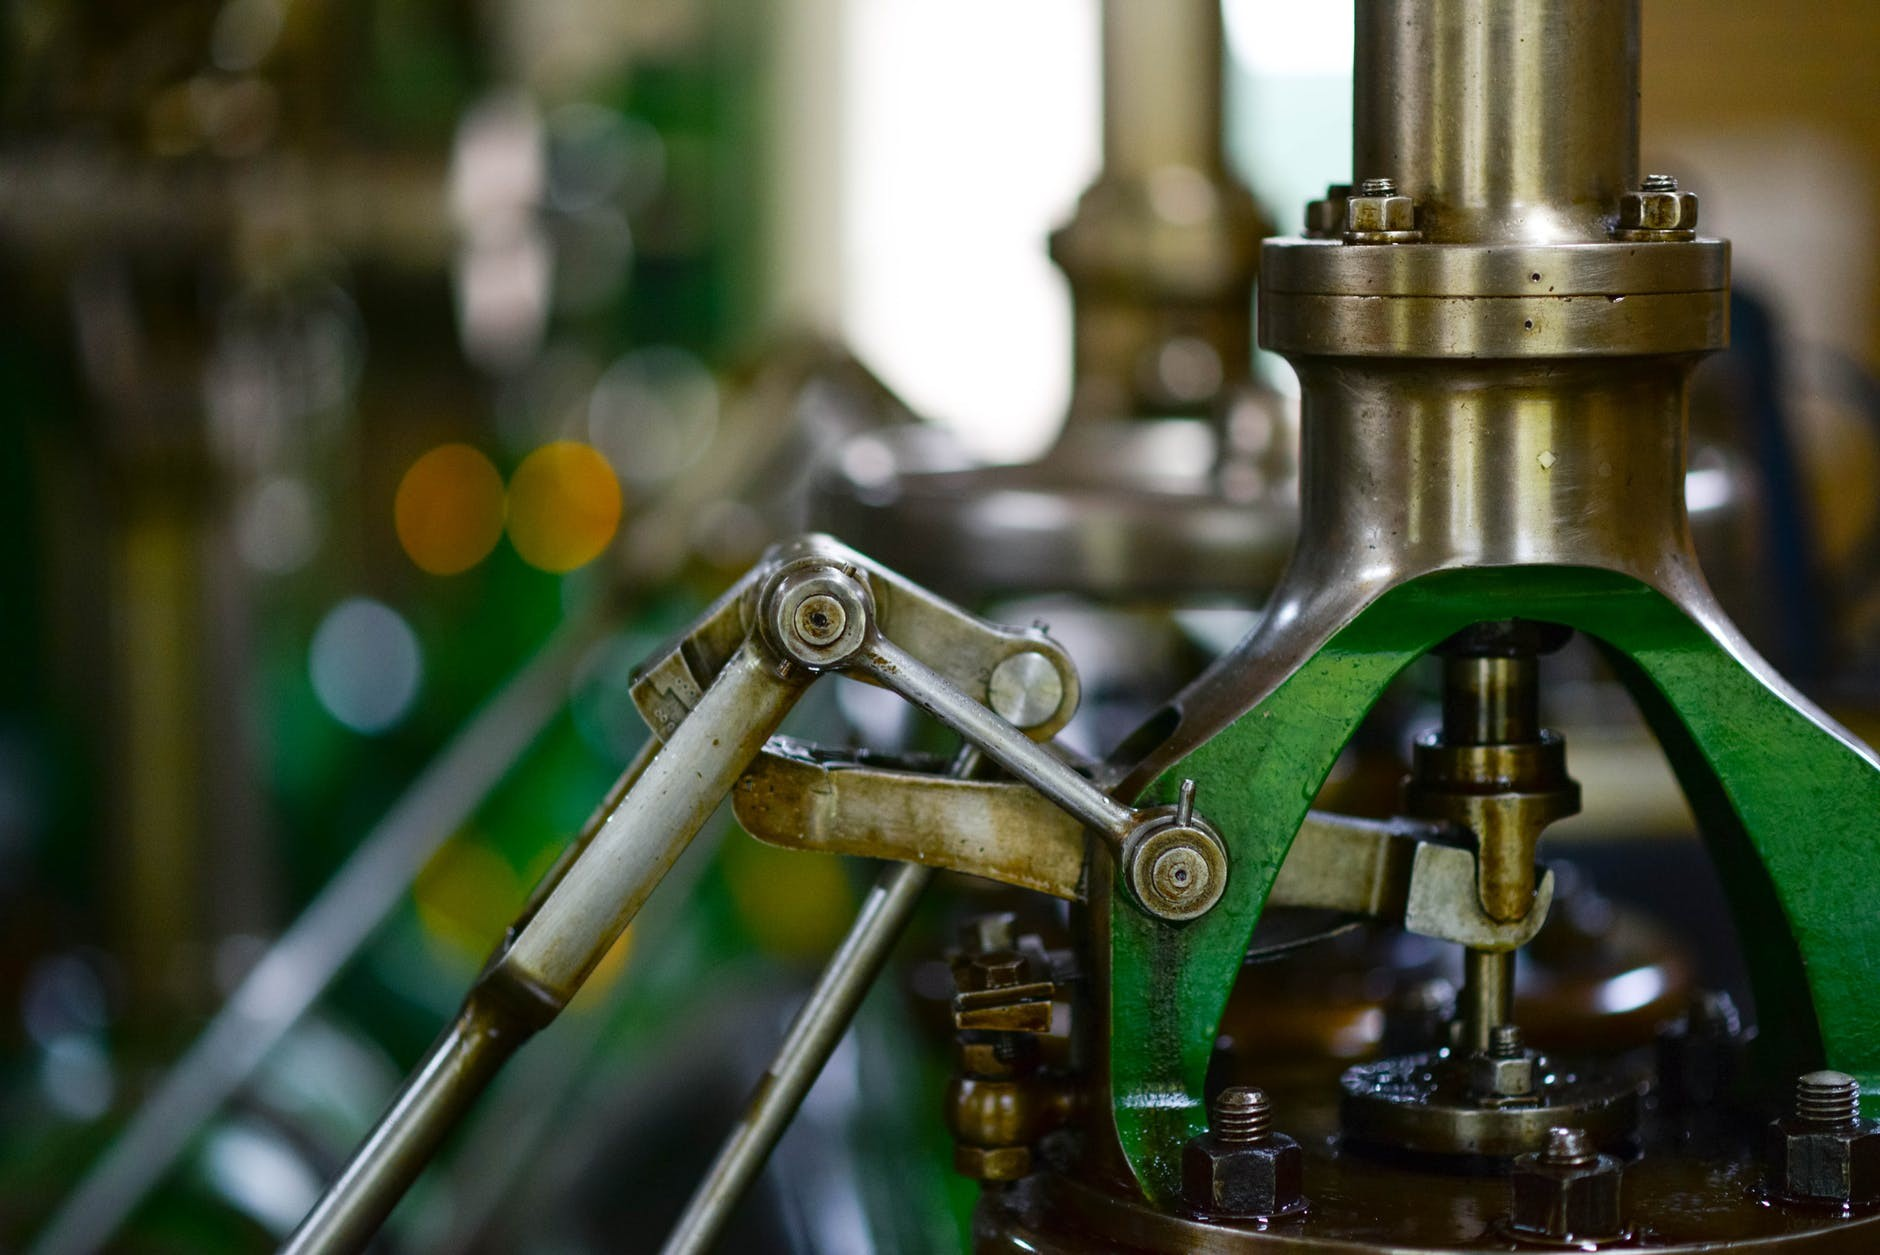 machine-mill-industry-steam-633850